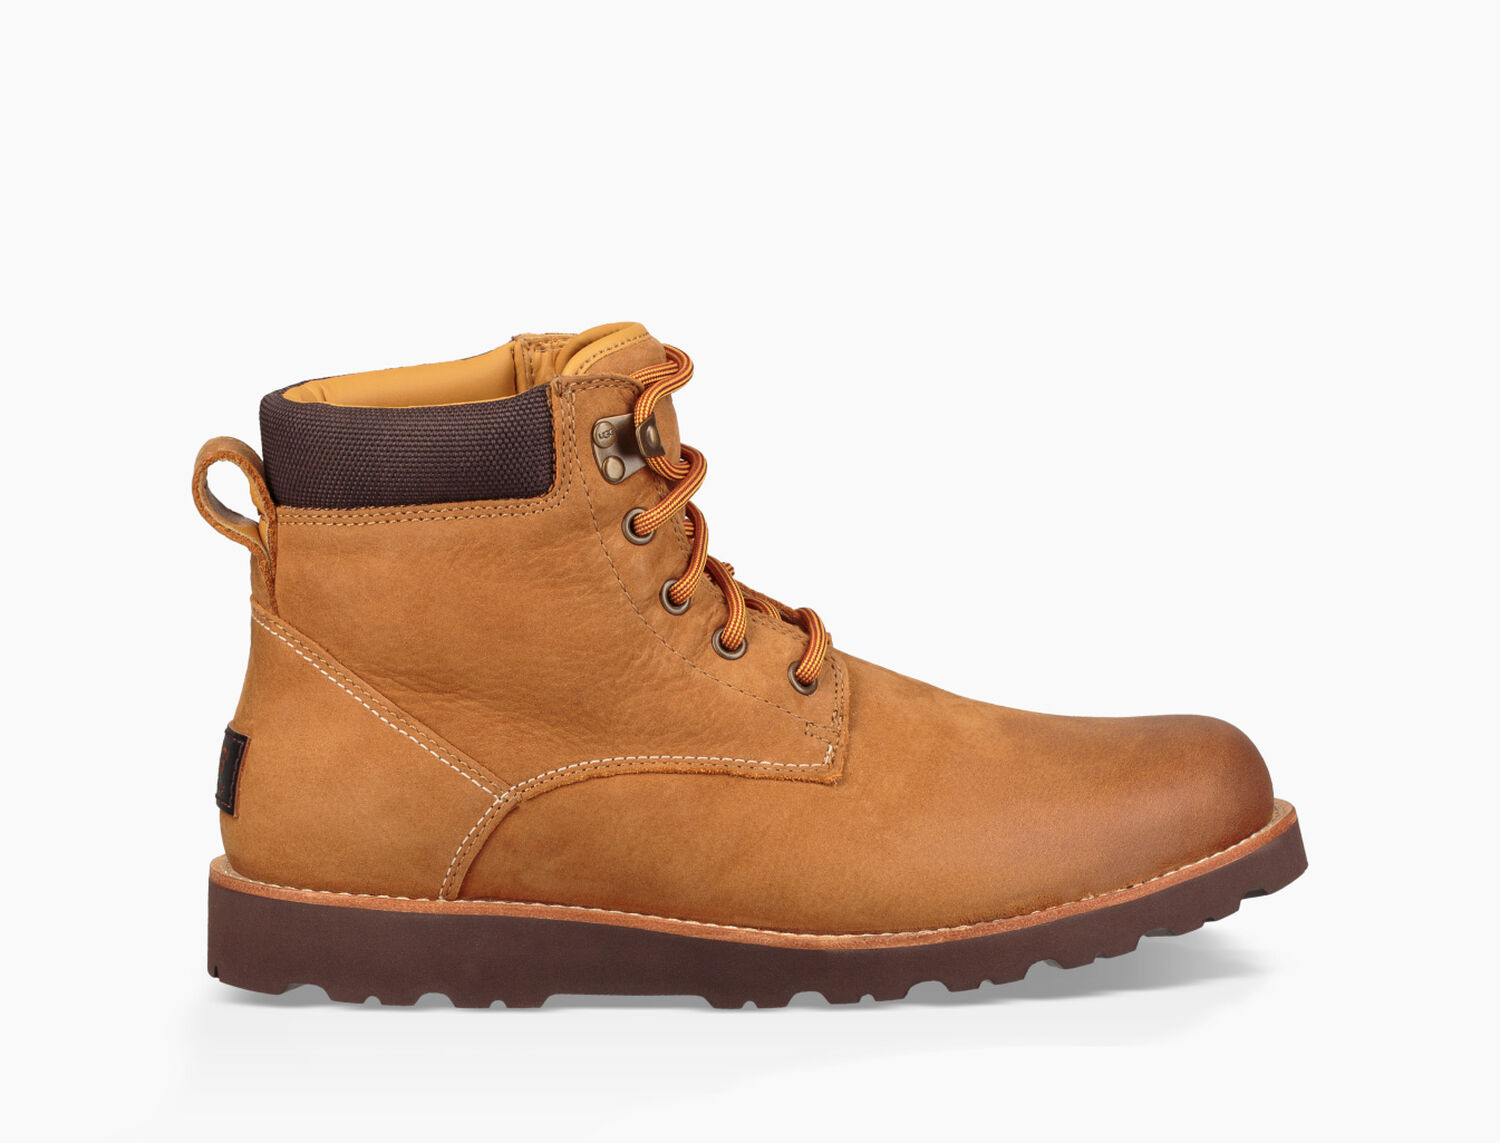 3665f0d0f8c Men's Share this product Seton Boot